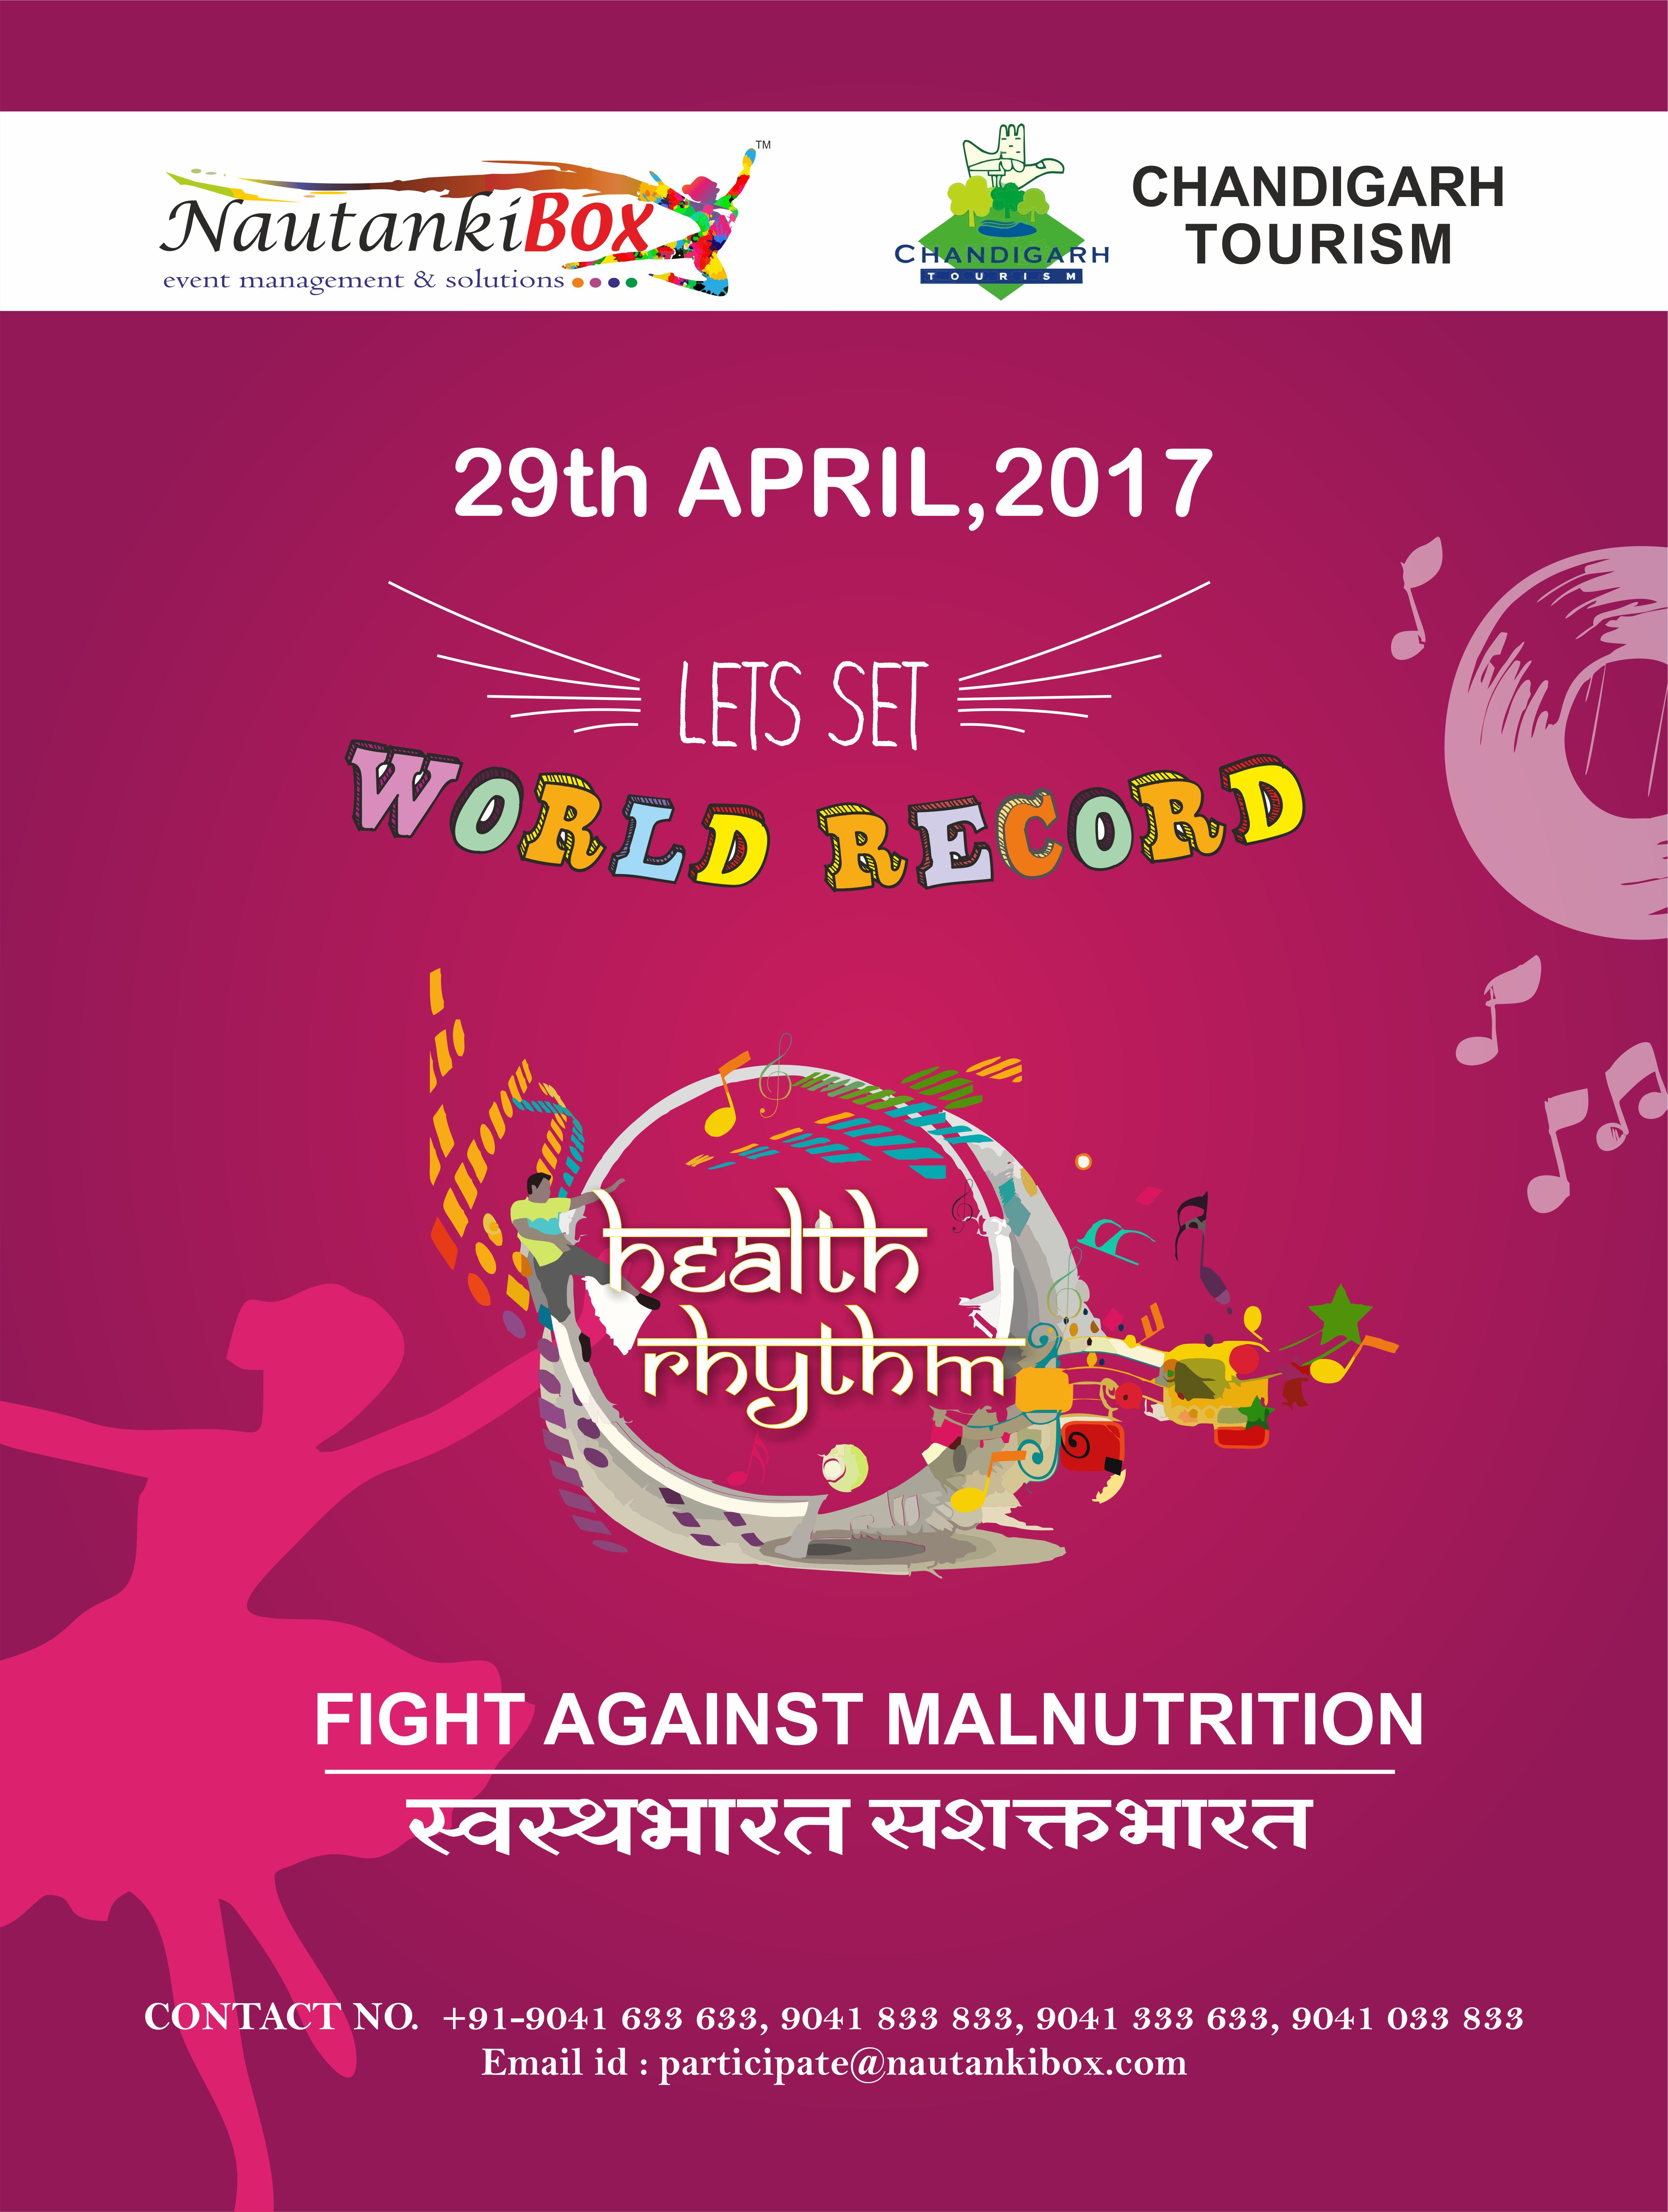 "#Lets_Set_WORLD_RECORD #Swasth_Bharat_Sashakt_Bharat 🇮🇳 ""To watch us Dance is to hear our Hearts speak"" so let's celebrate ""WORLD'S DANCE DAY"" and express our love for Dance! Be the part of gala event ""Health Rhythm"" on 29th April 2017 at Capitol Complex Chandigarh."